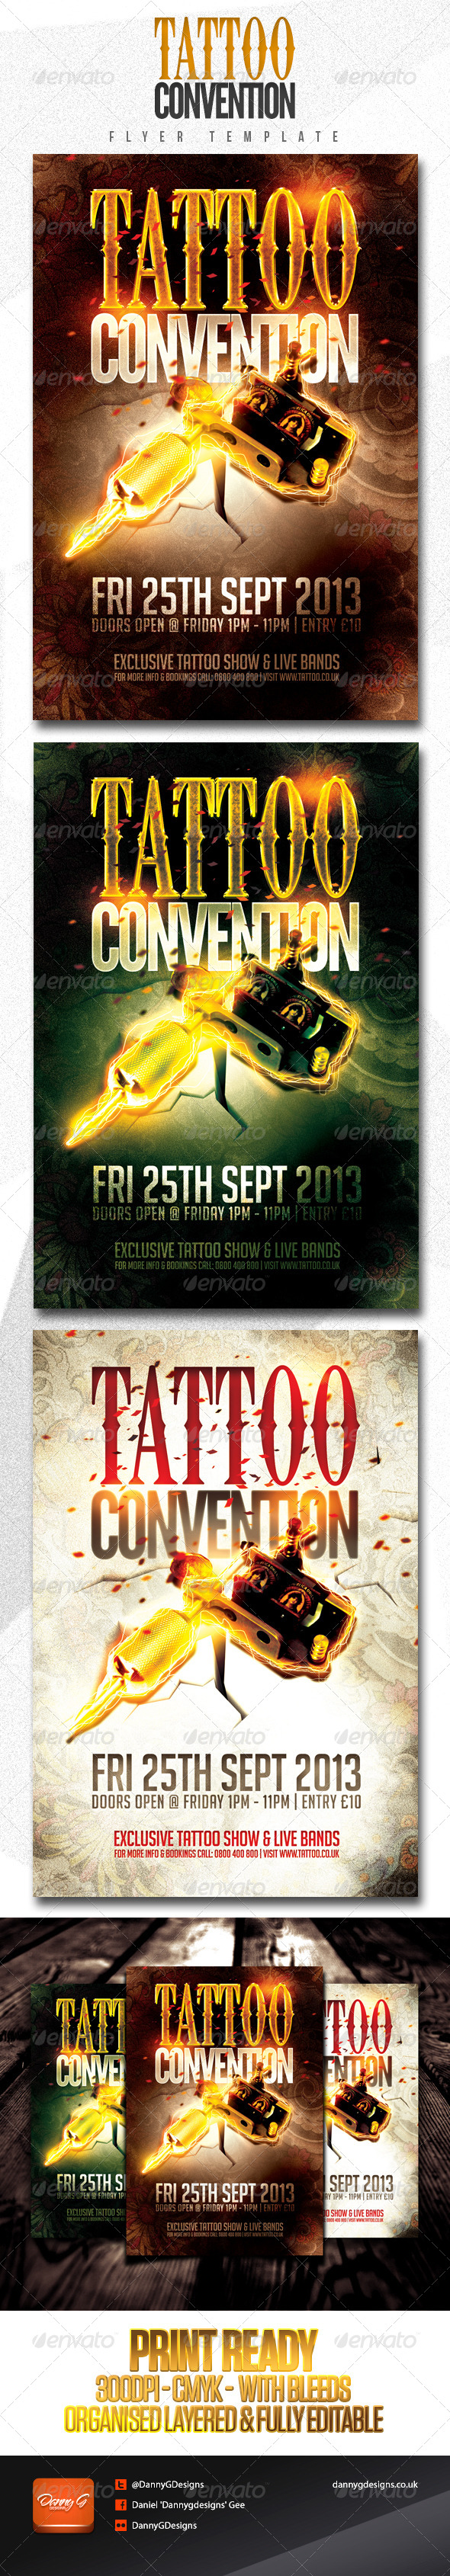 Tattoo Convention Flyer Template - Miscellaneous Events